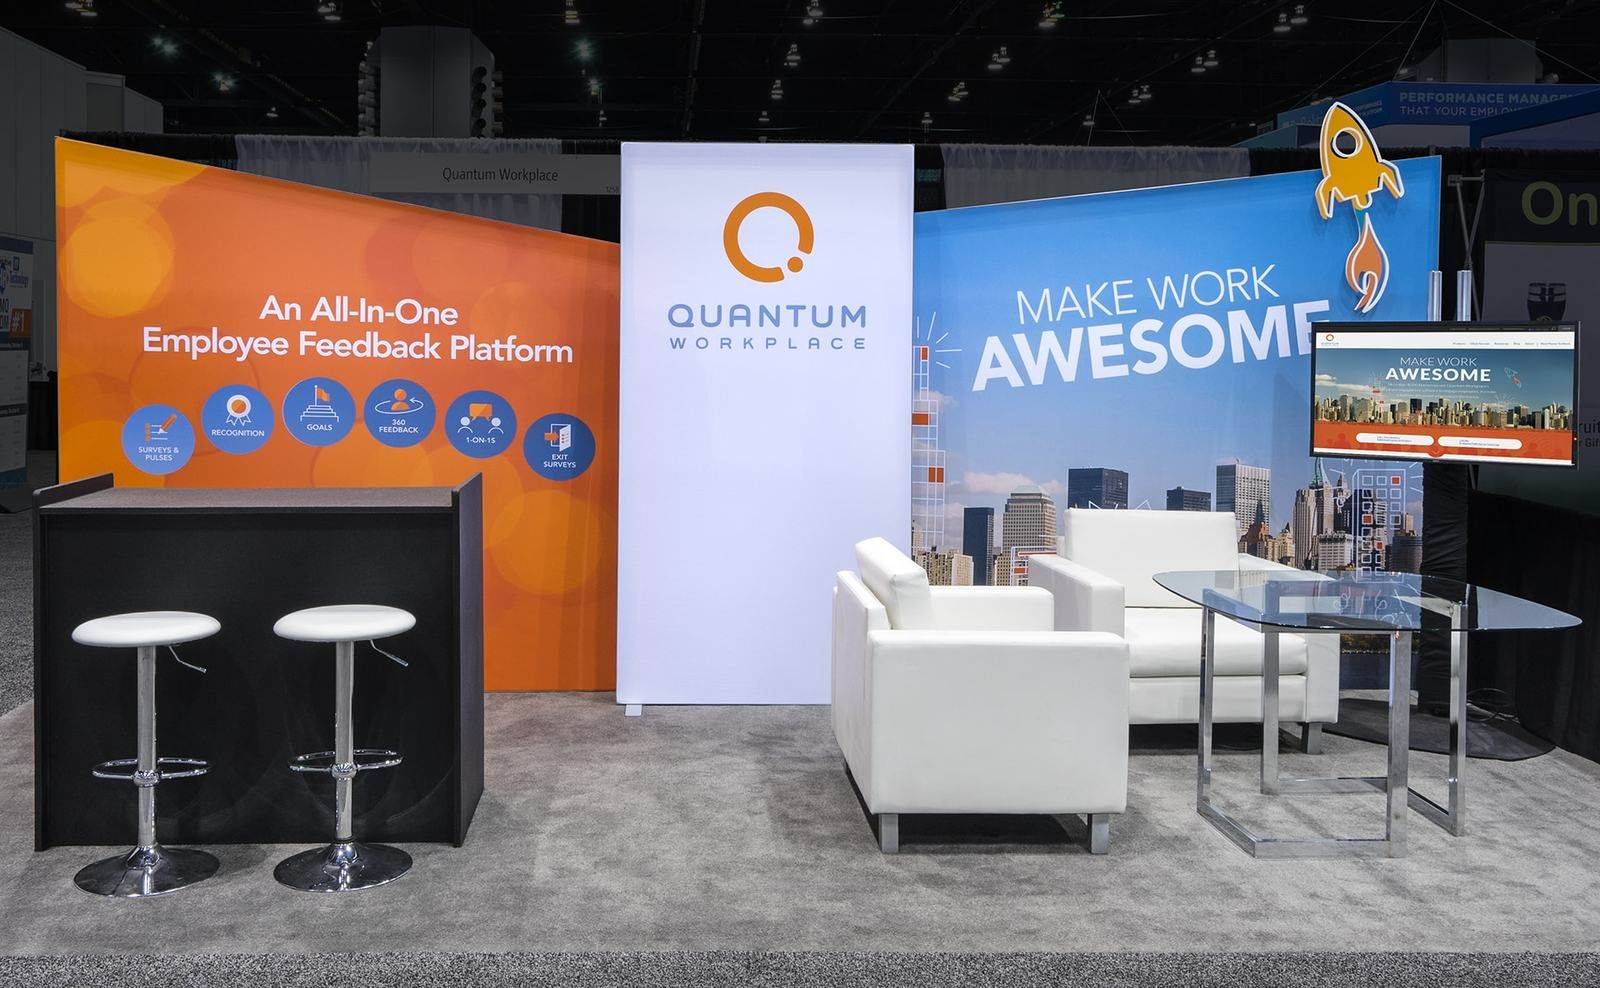 11 Most Appealing (and Effective) Trade Show Booth Design ...